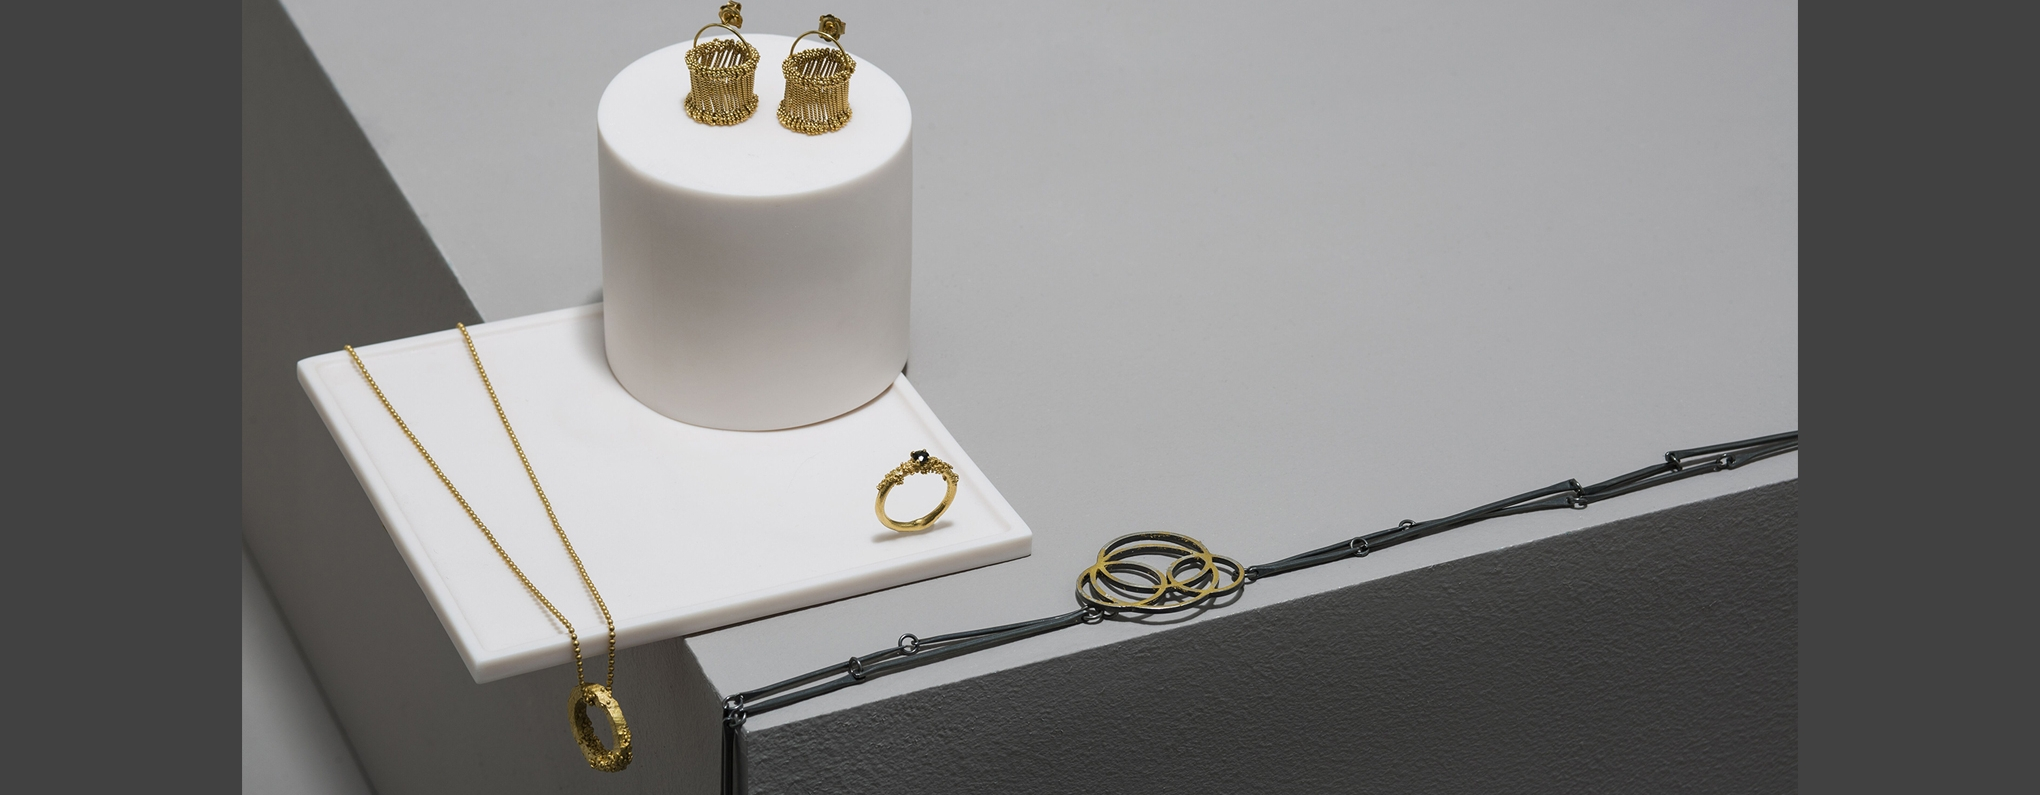 jewellery laid out in display